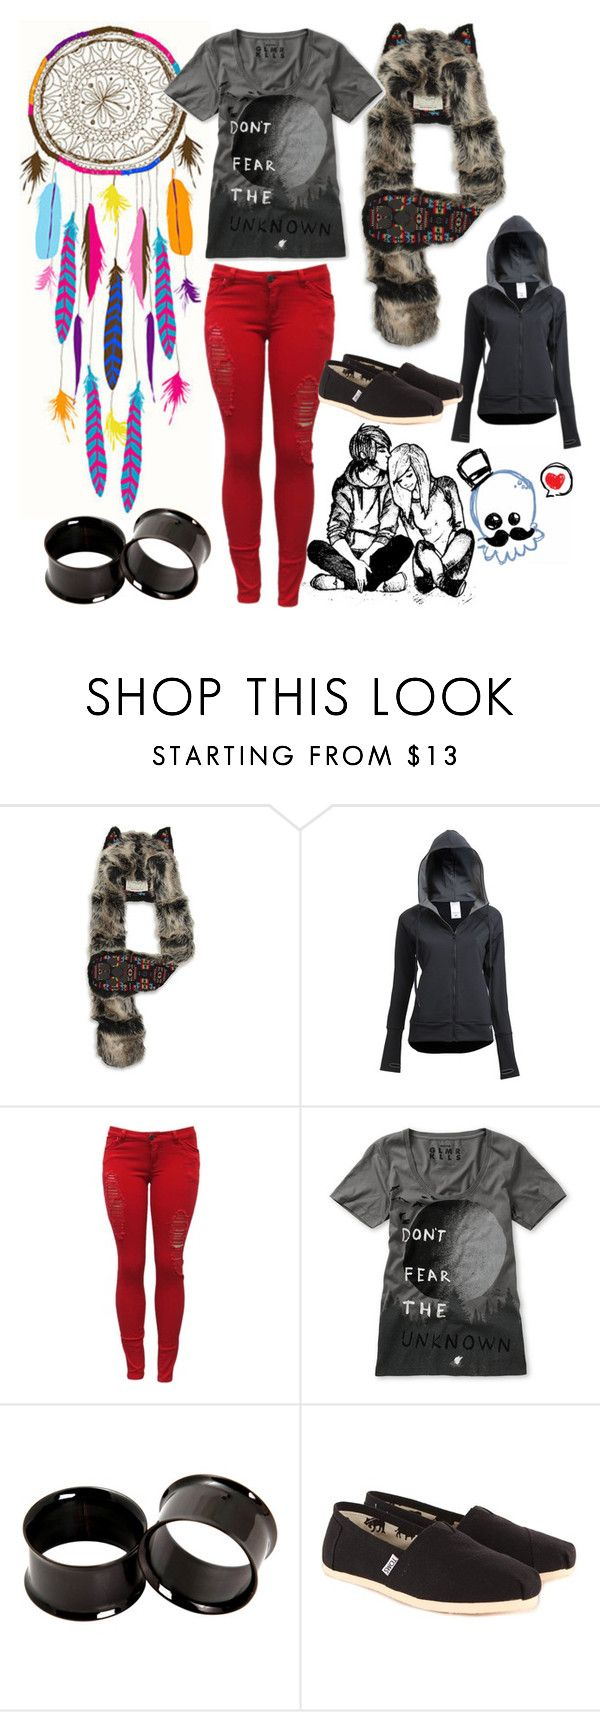 """Untitled #4"" by kaylanrespawn ❤ liked on Polyvore featuring Spirit Hoods, Capezio, Glamour Kills and TOMS"